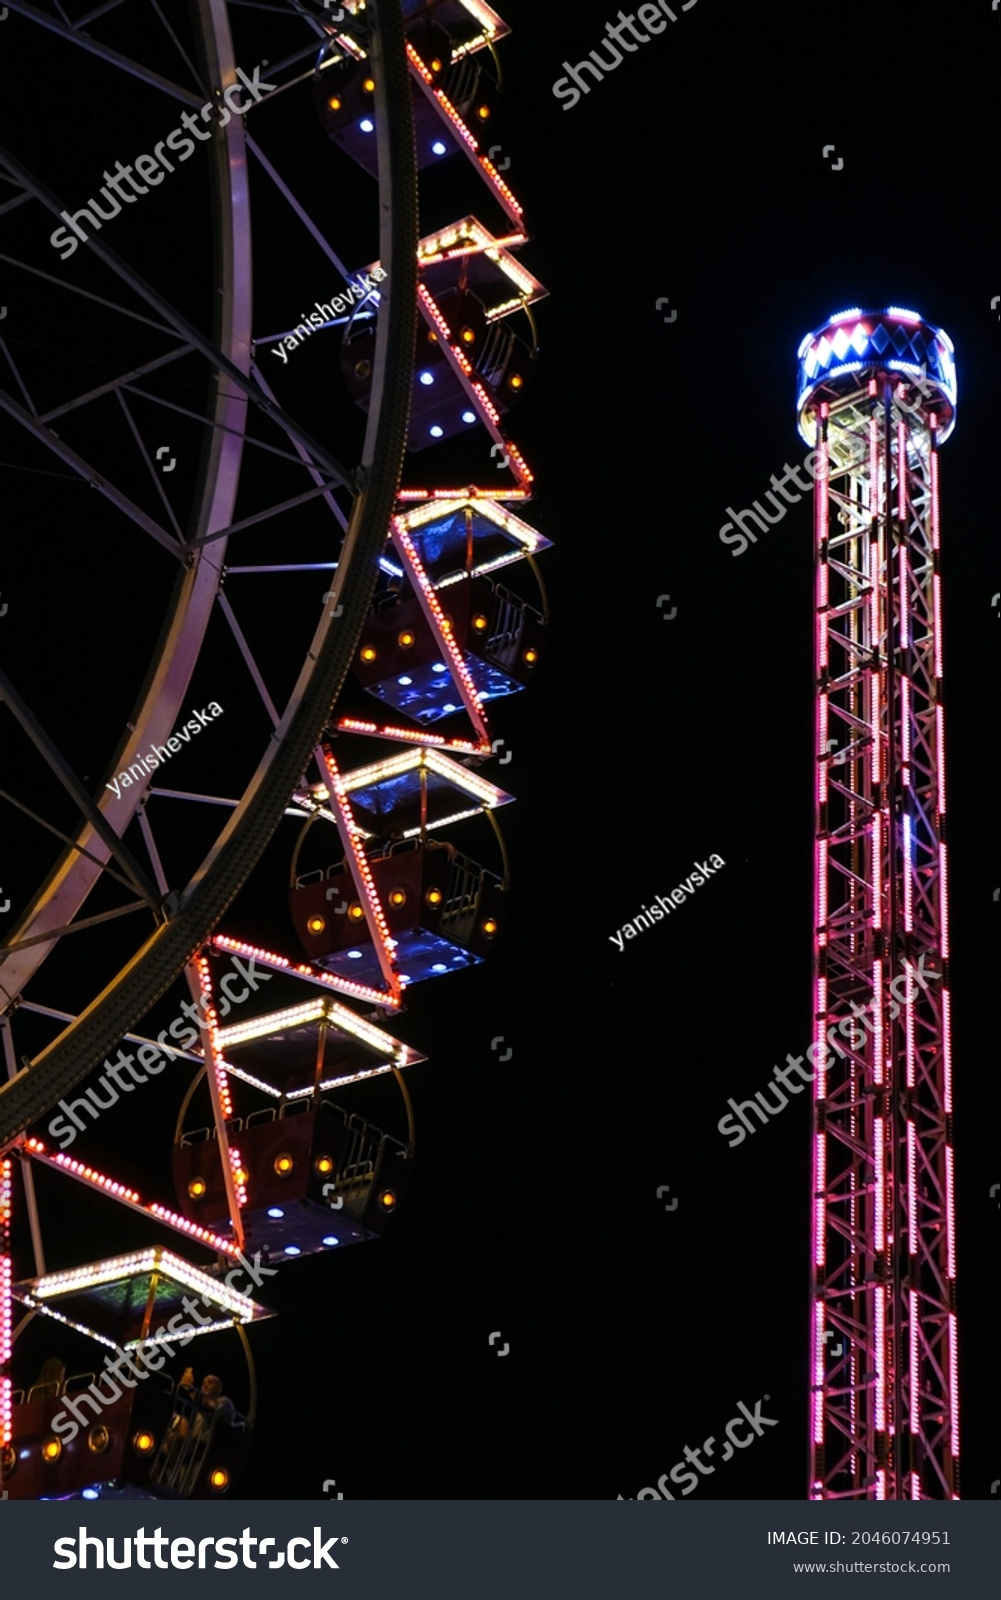 Ferris Wheel Lights at Night. Neon colored lights flashing on the Ferris wheel. Amusement park at night. Entertainment and fun. Recreation carousel at carnival. Colorful Ferris wheel #2046074951